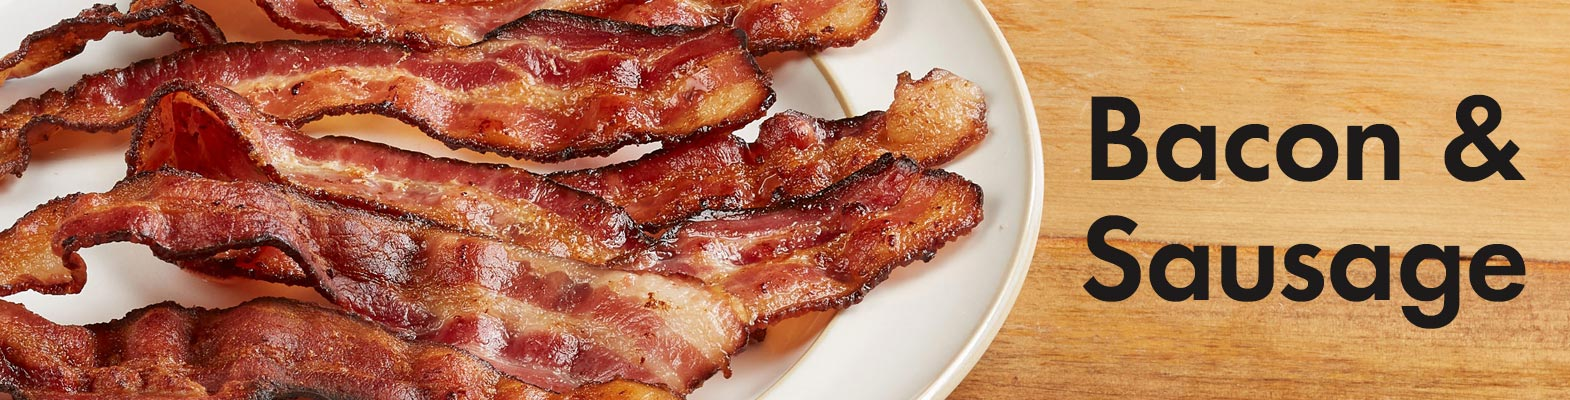 Bacon and Sausage Products